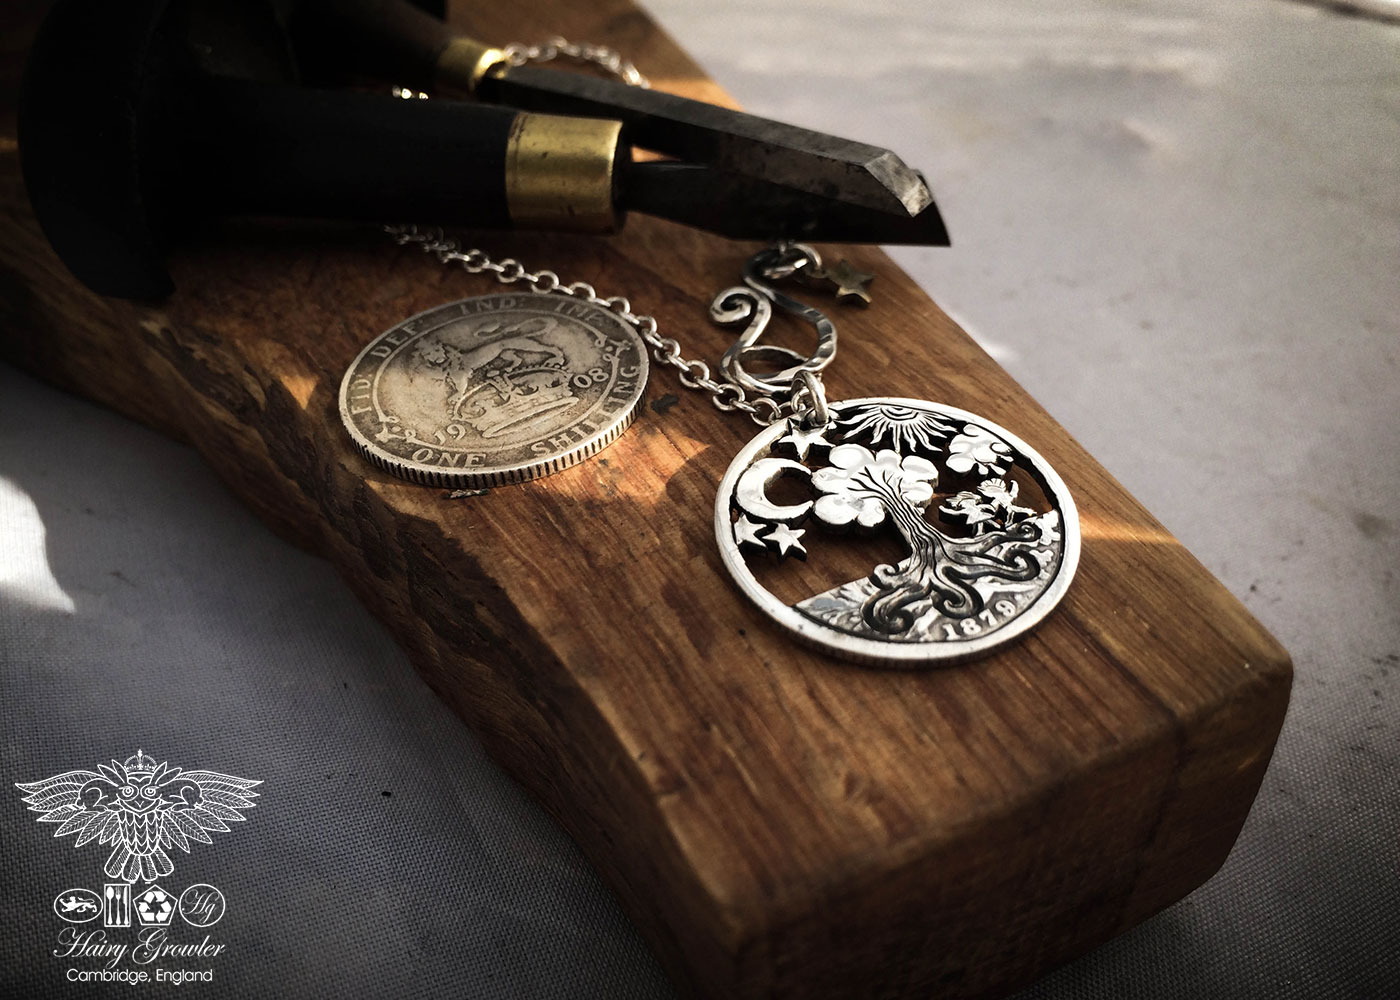 Handcrafted and recycled Geocentric flat earth earth view silver shilling coin pendant necklace